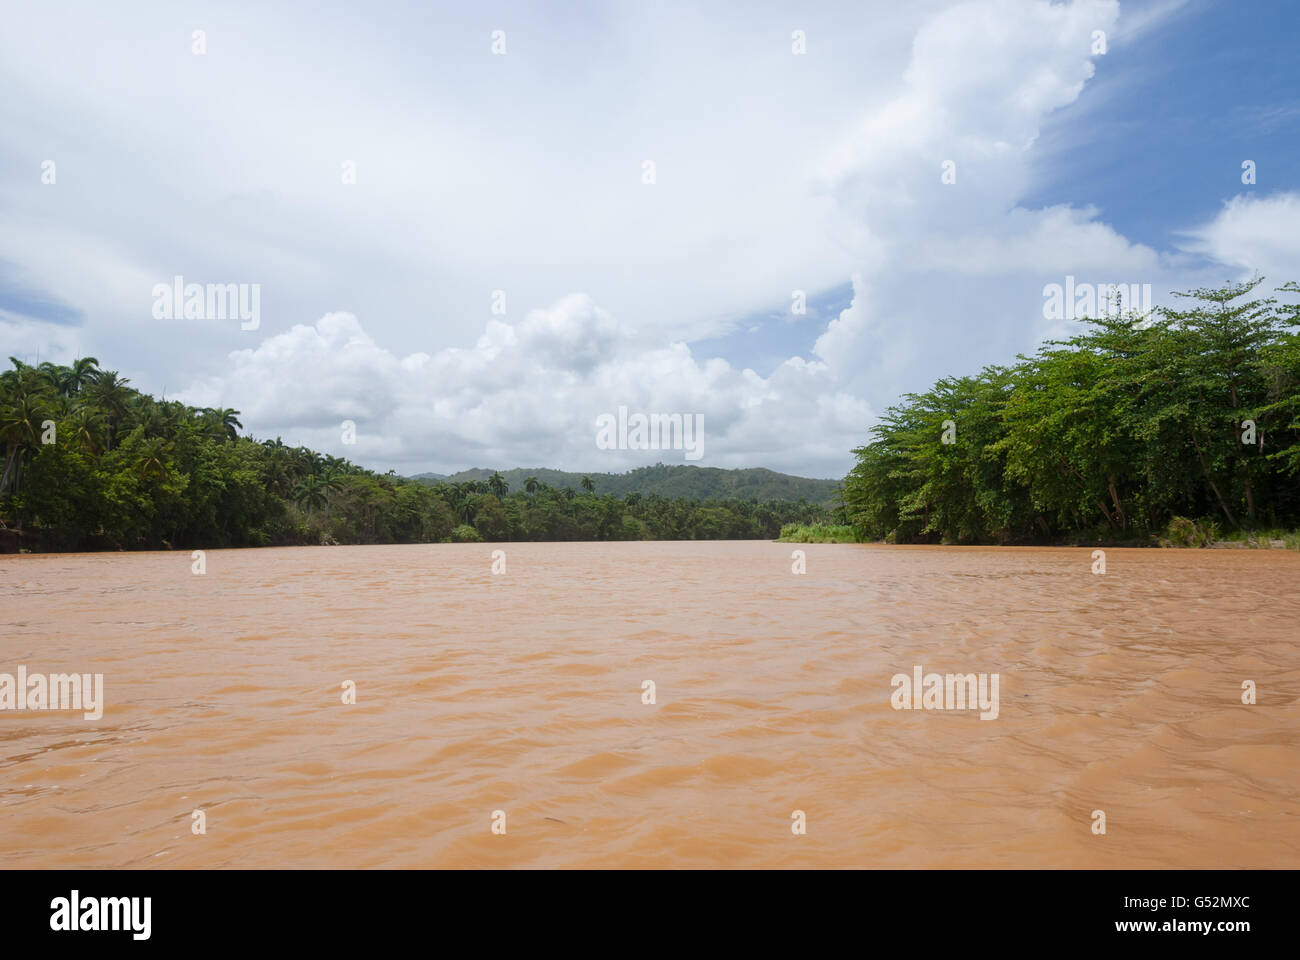 Cuba, Guantánamo, Paso de Toa, boat on the Toa river in Paso de Toa - Stock Image